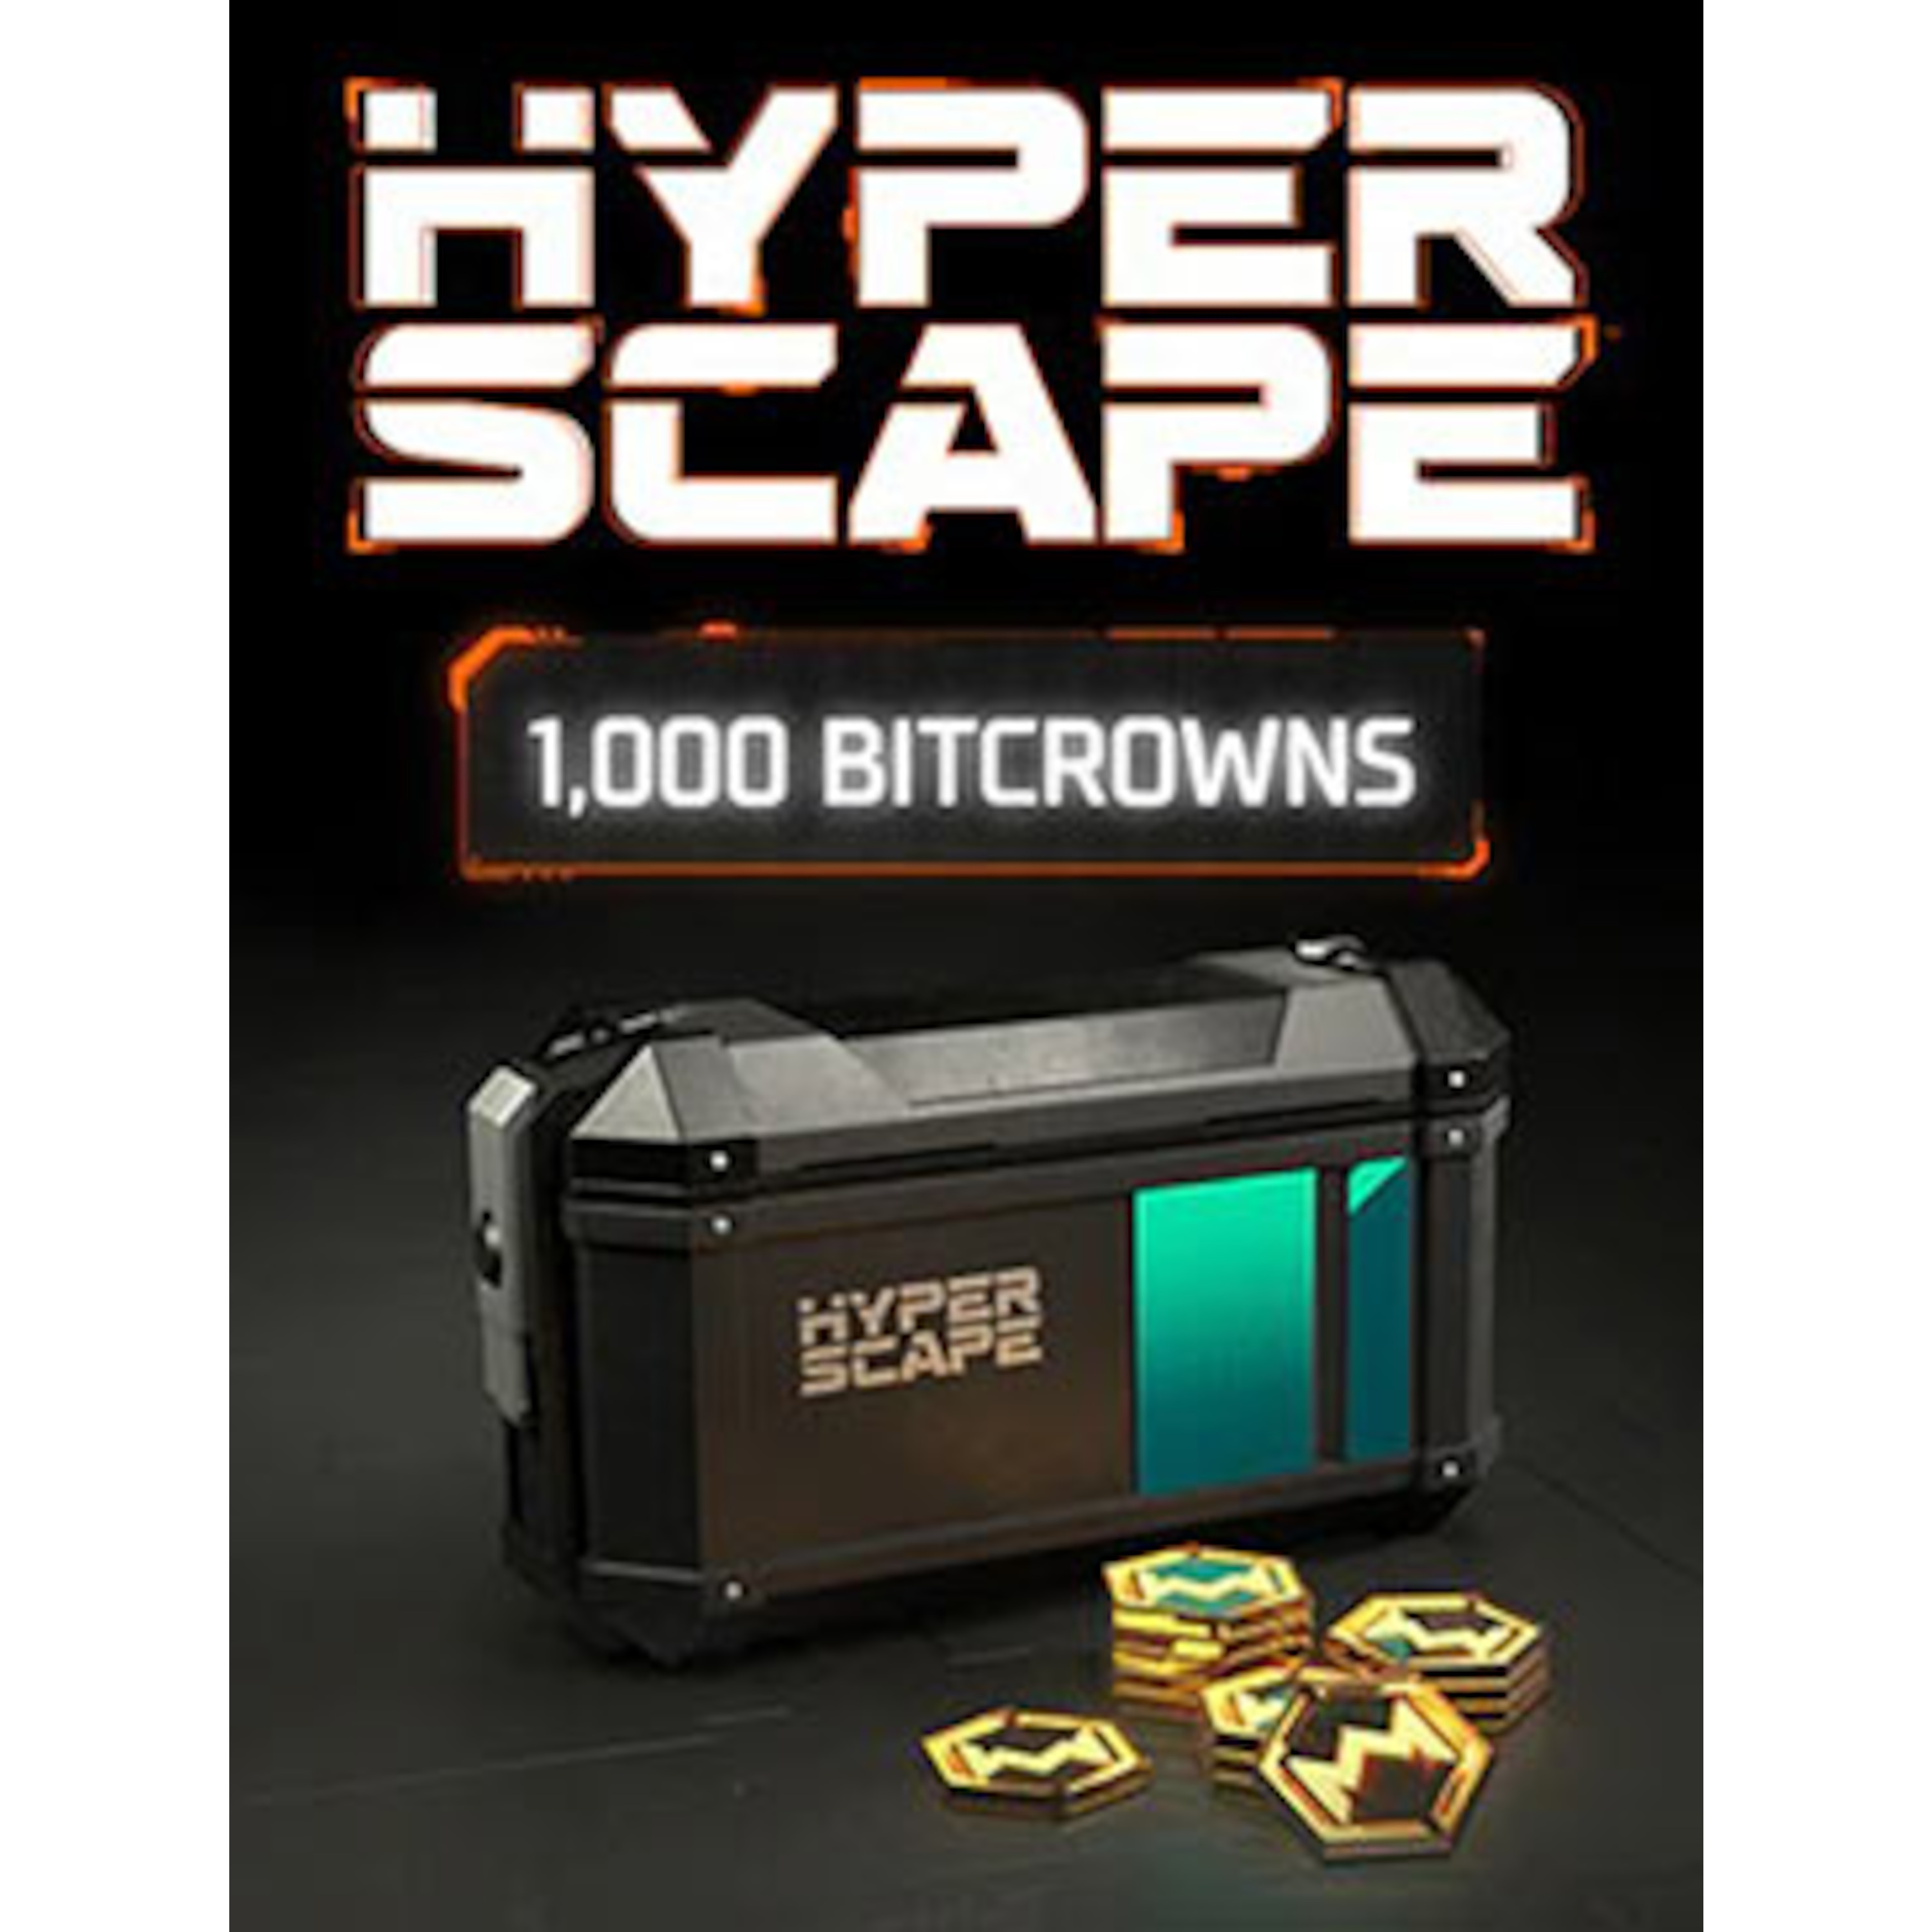 Hyper Scape Virtual Currency: 1000 Bitcrowns Pack (Xbox)